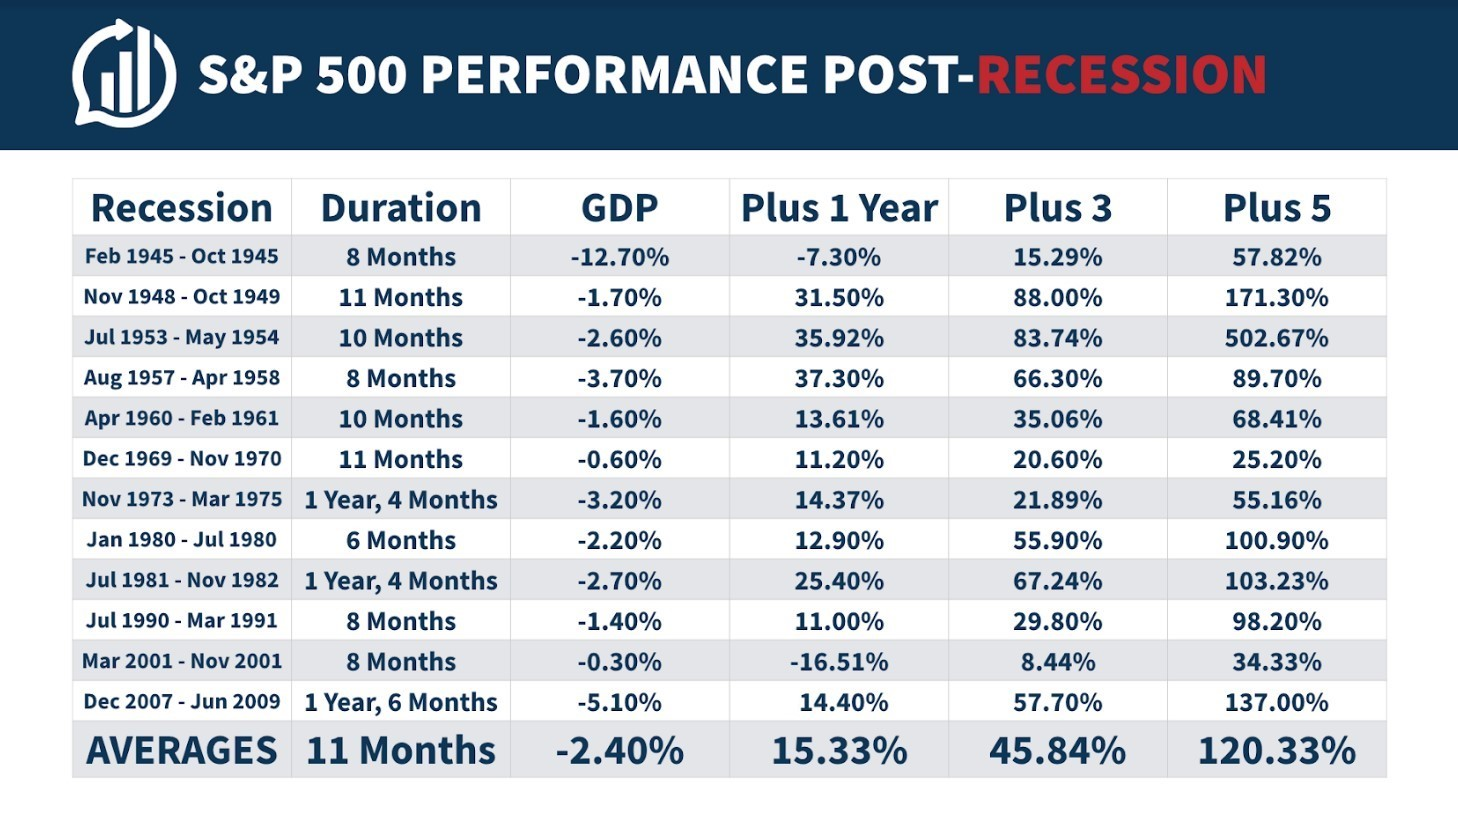 Stock market performance after a recession